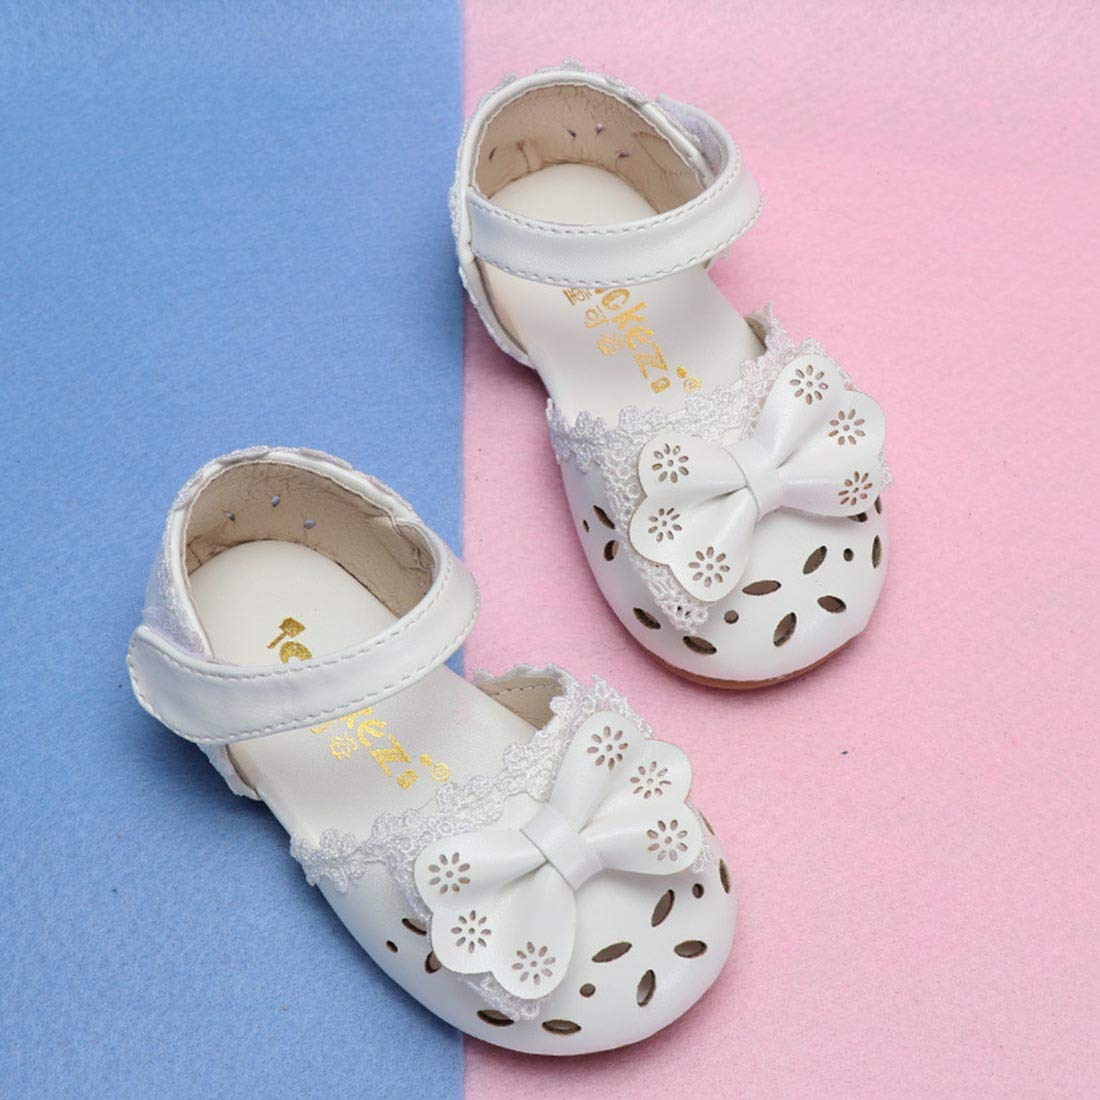 Toddler//Little Kid YIBLBOX Baby Girls PU Leather Soft Closed Toe Princess Mary Jane Flat Shoes Summer Sandals